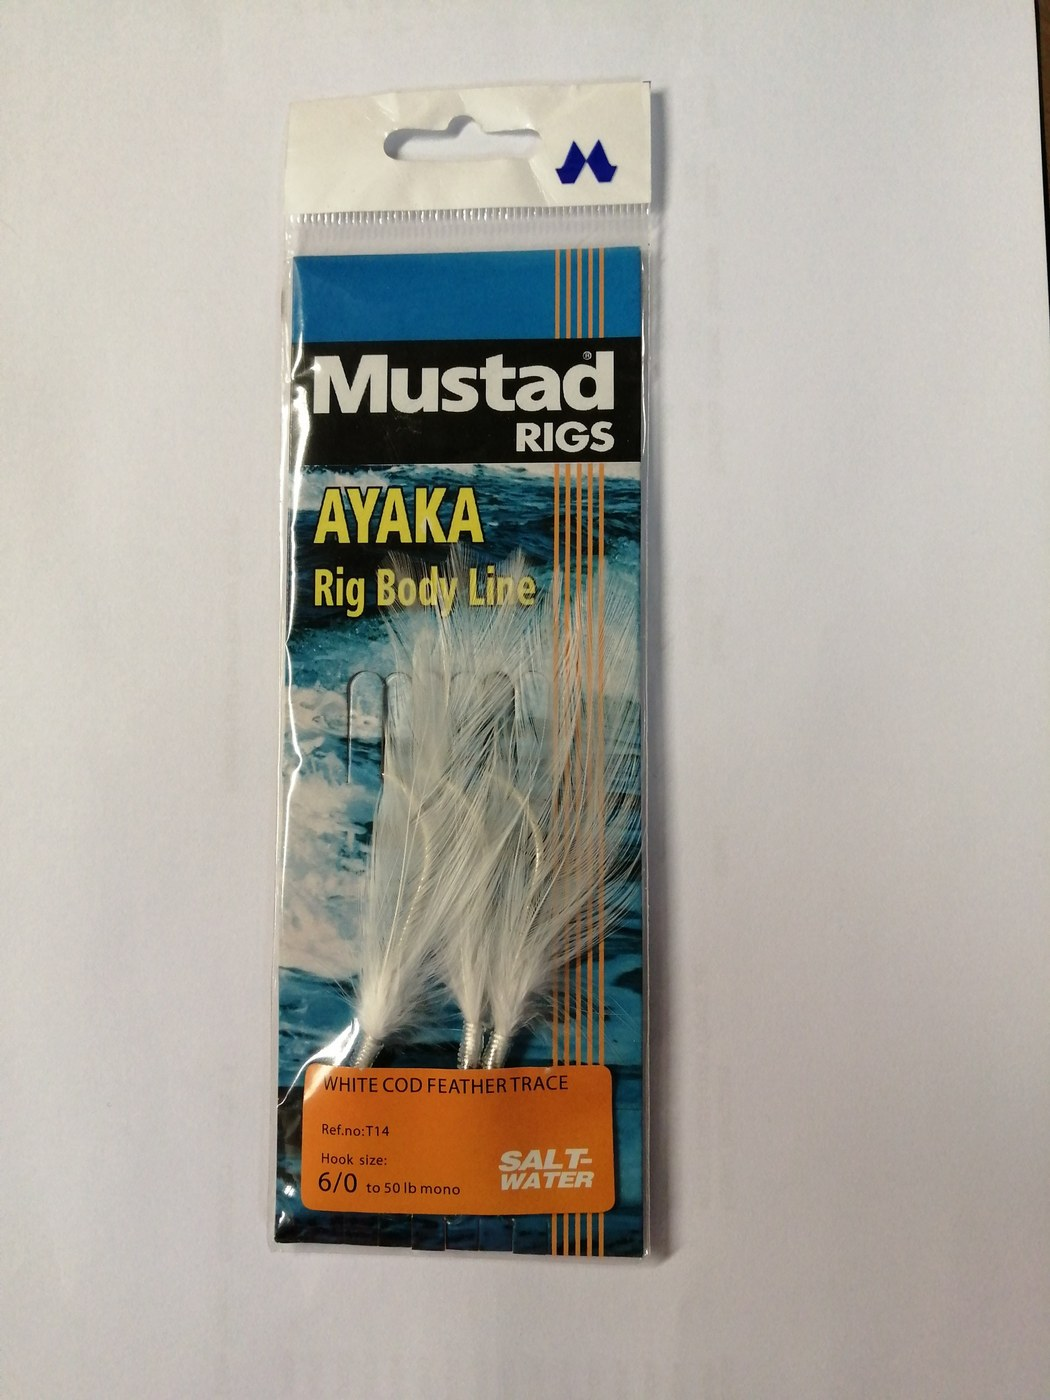 Mustad White Cod Feather Trace